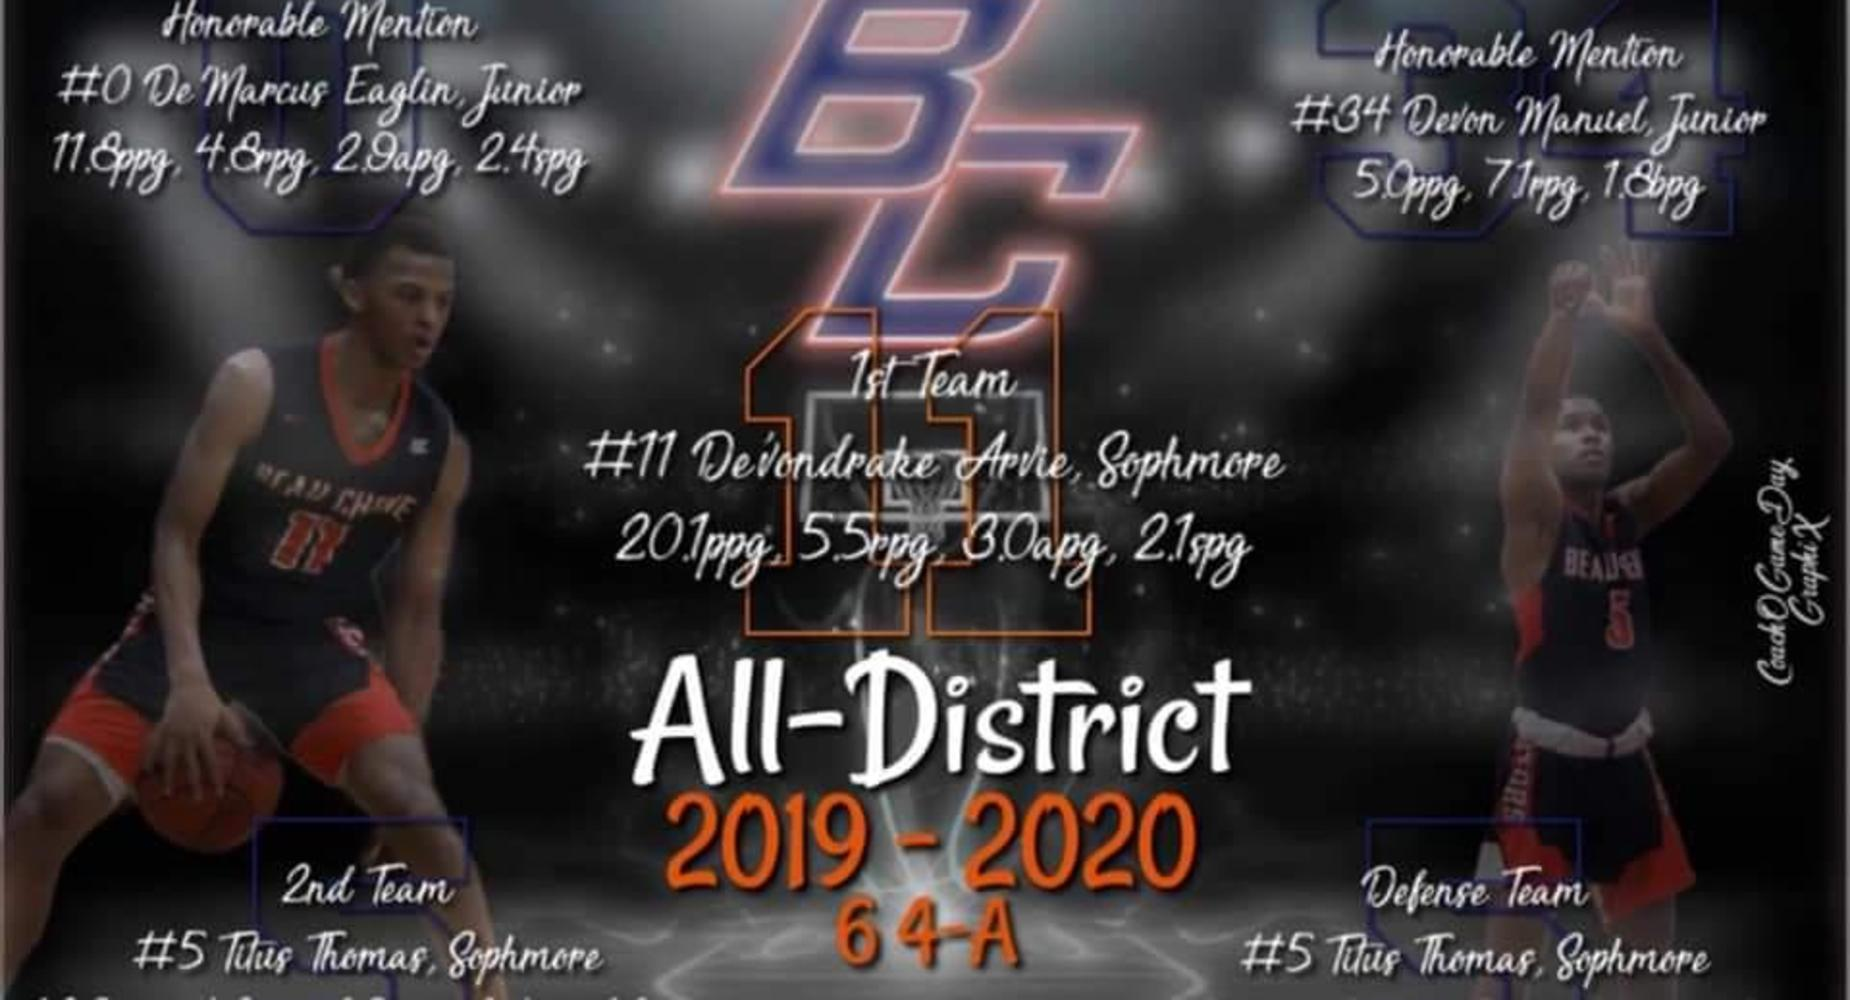 2019-2020 Basketball -All District - Donvodrake Arvie and Titus Thomas